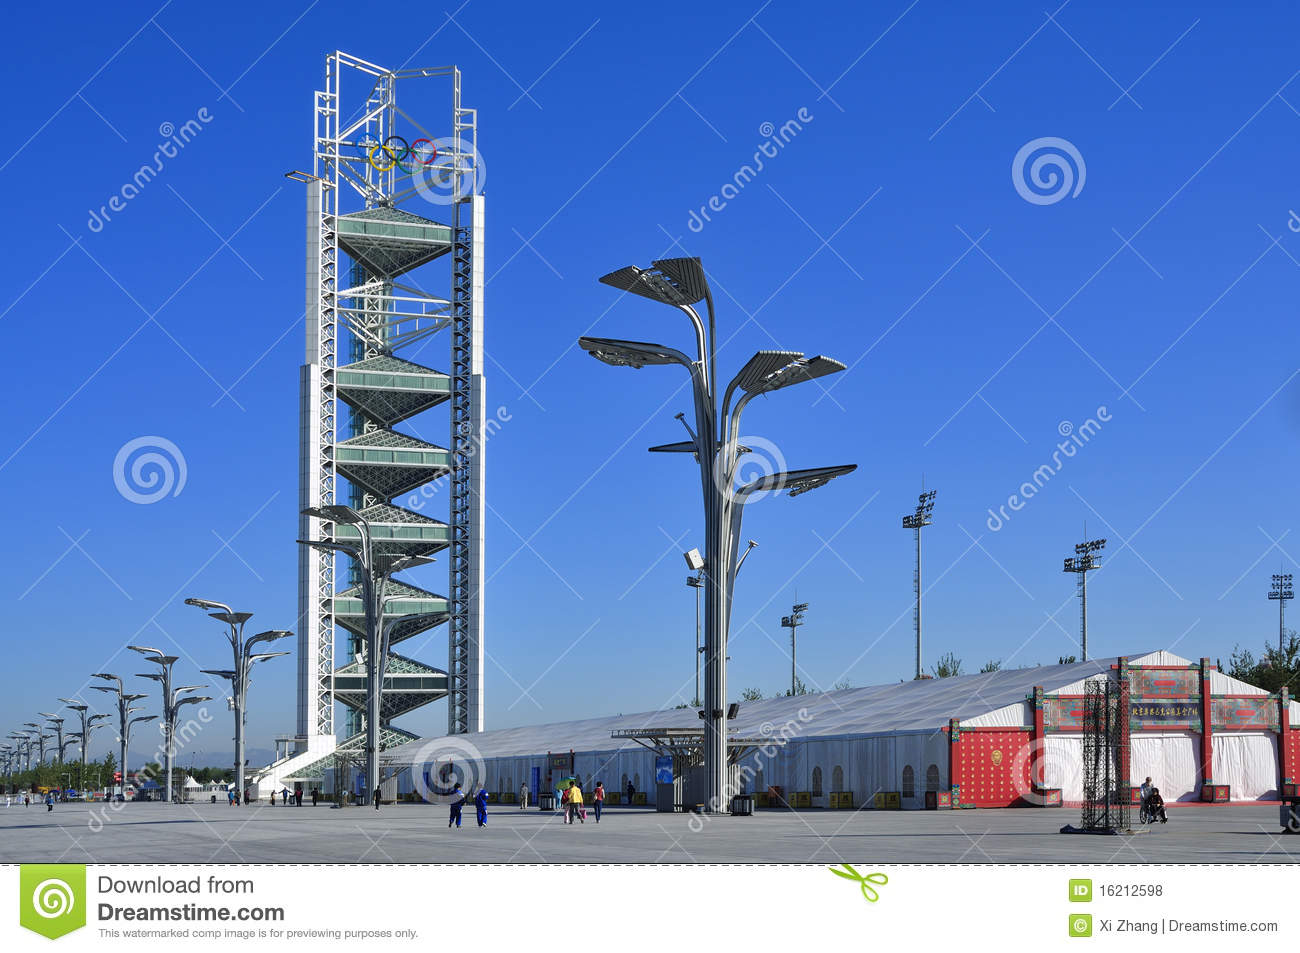 China Olympic Park Tower In Beijing Editorial Stock Photo.